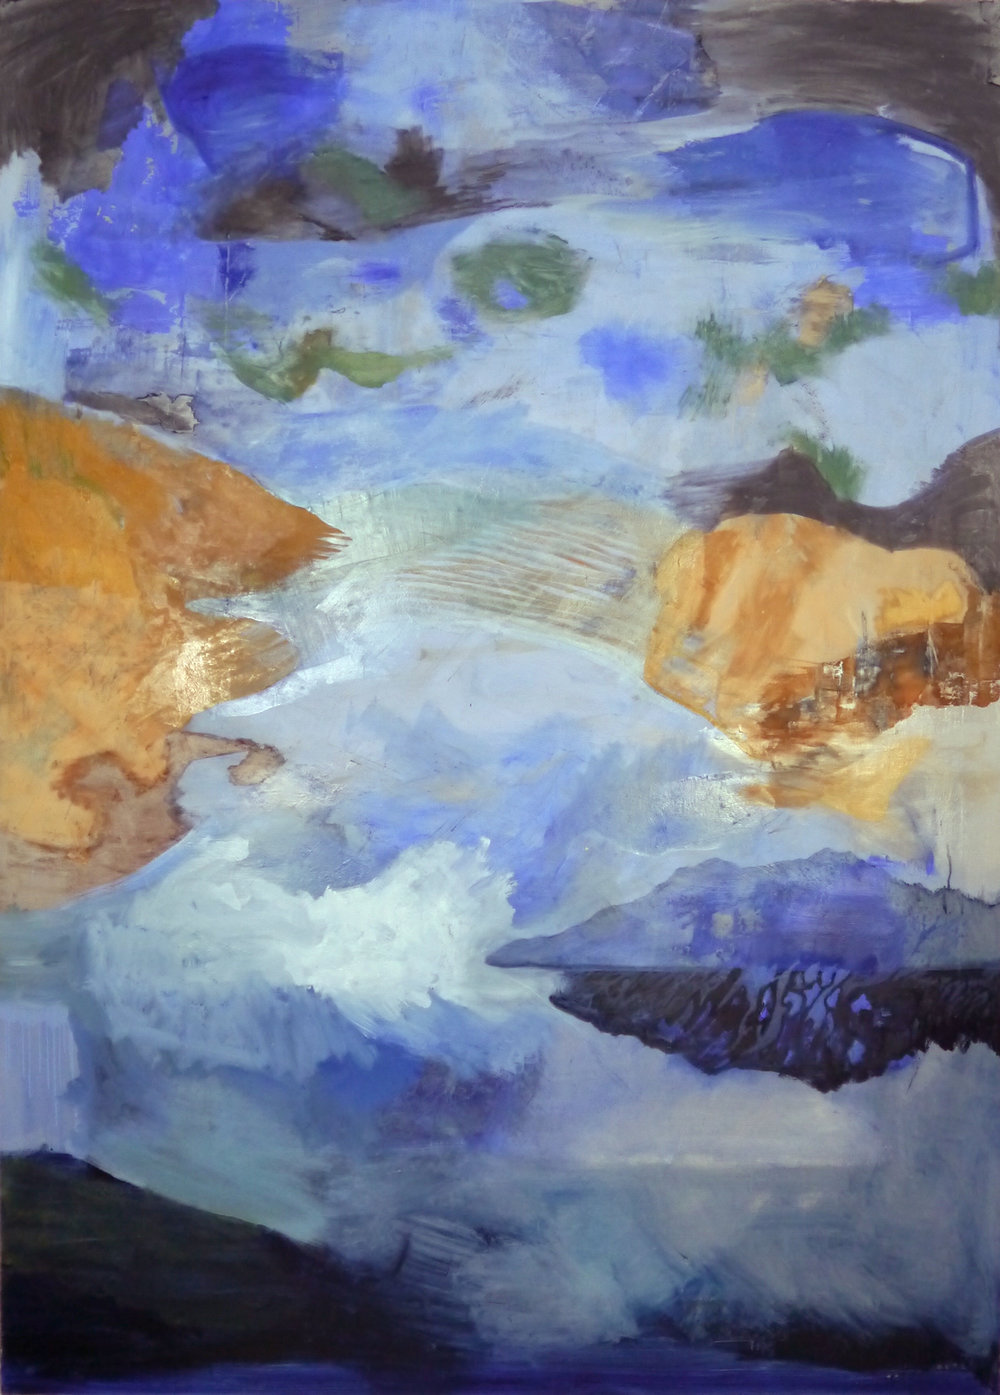 Kathline Carr,  Bay Towards the End,  Oil, graphite, plaster on paper mounted on wood, 67x50